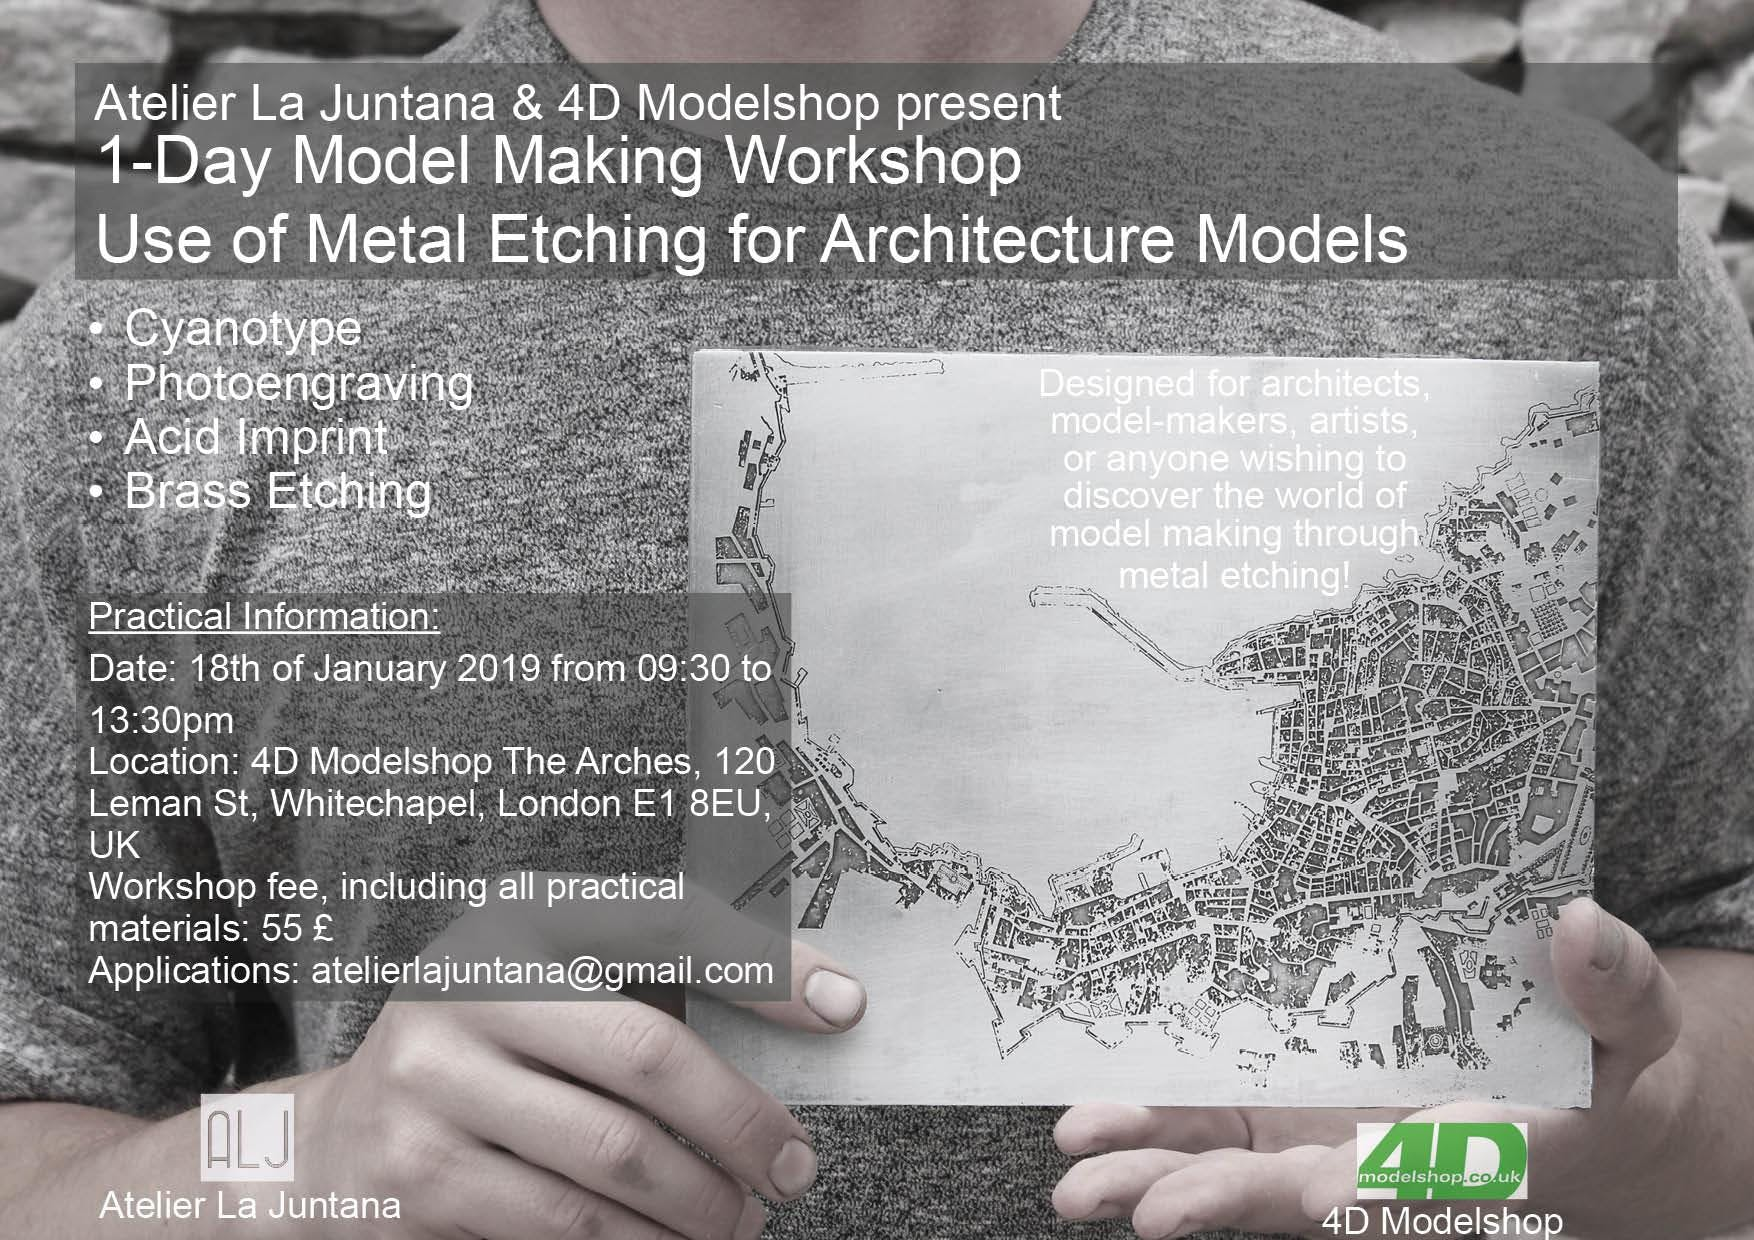 Modelmaking workshop - Use of Metal Etching f